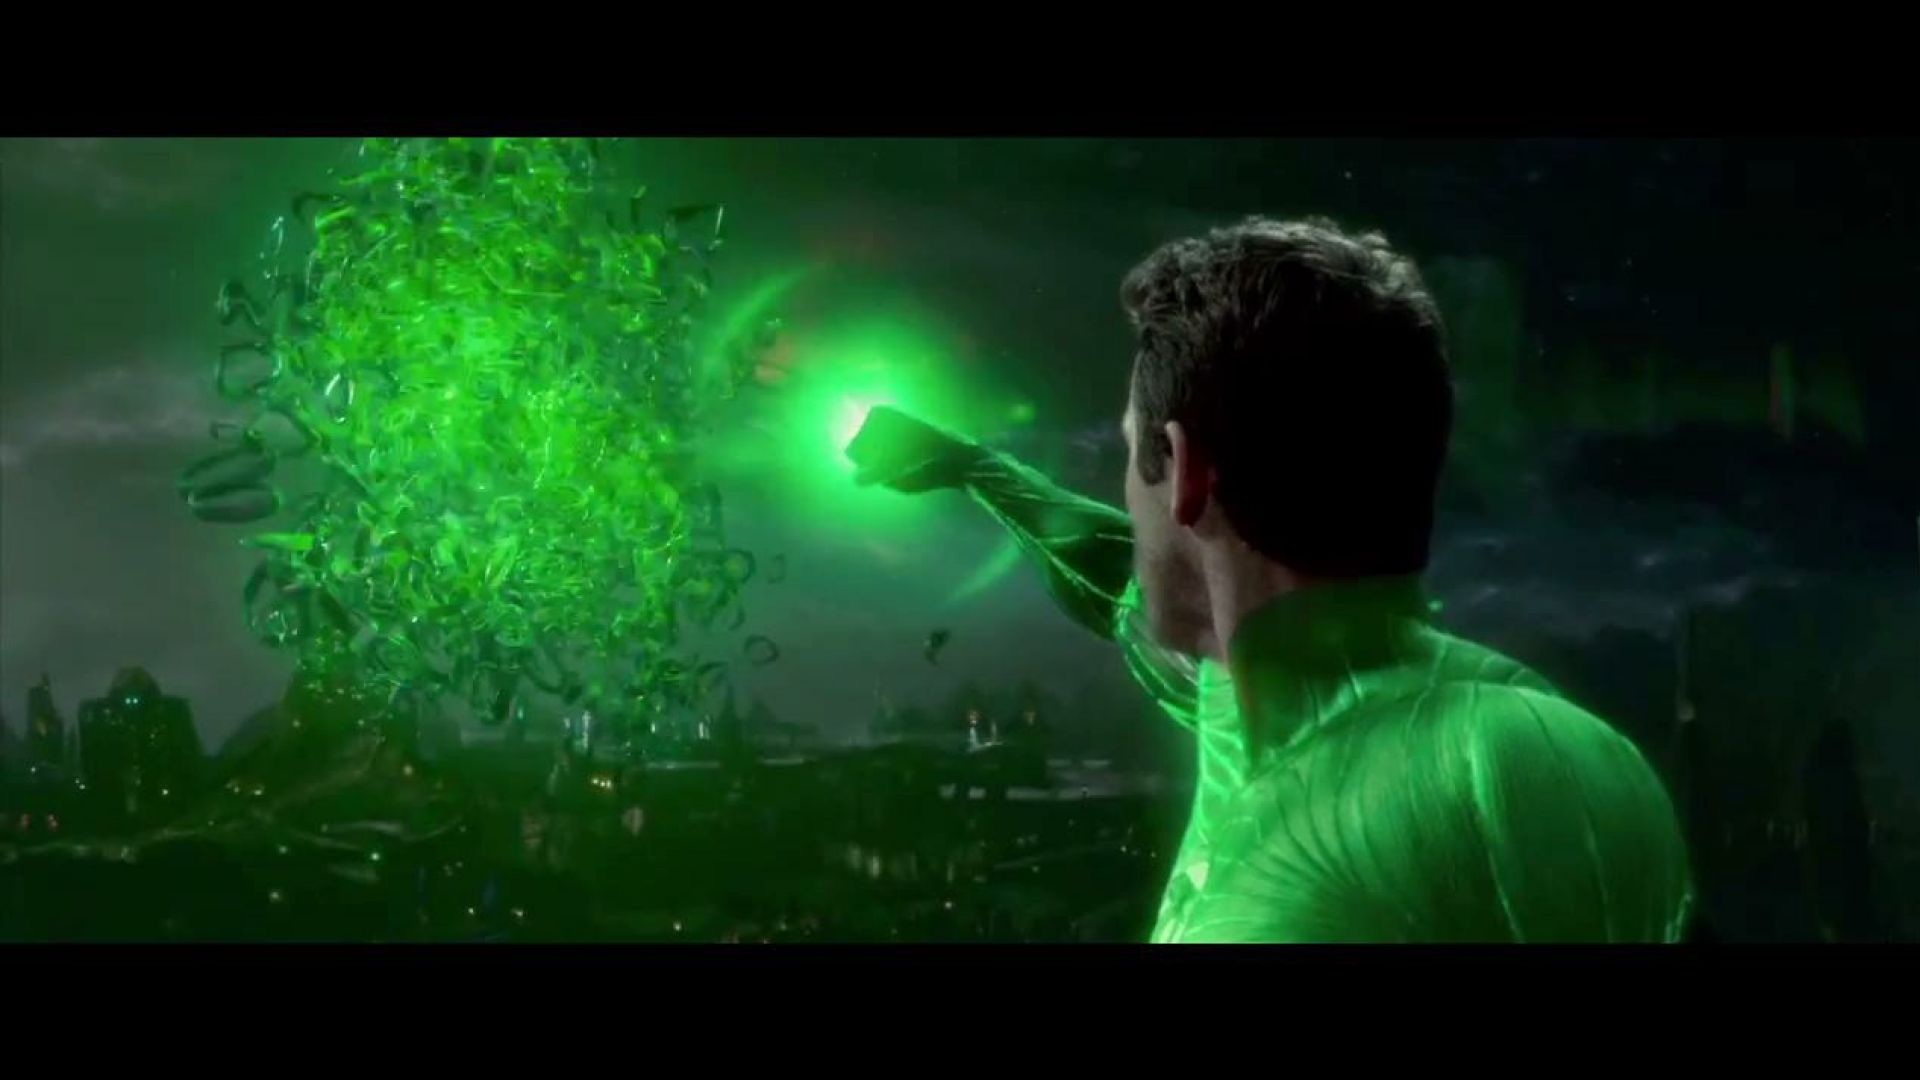 The Green Lantern can create anything